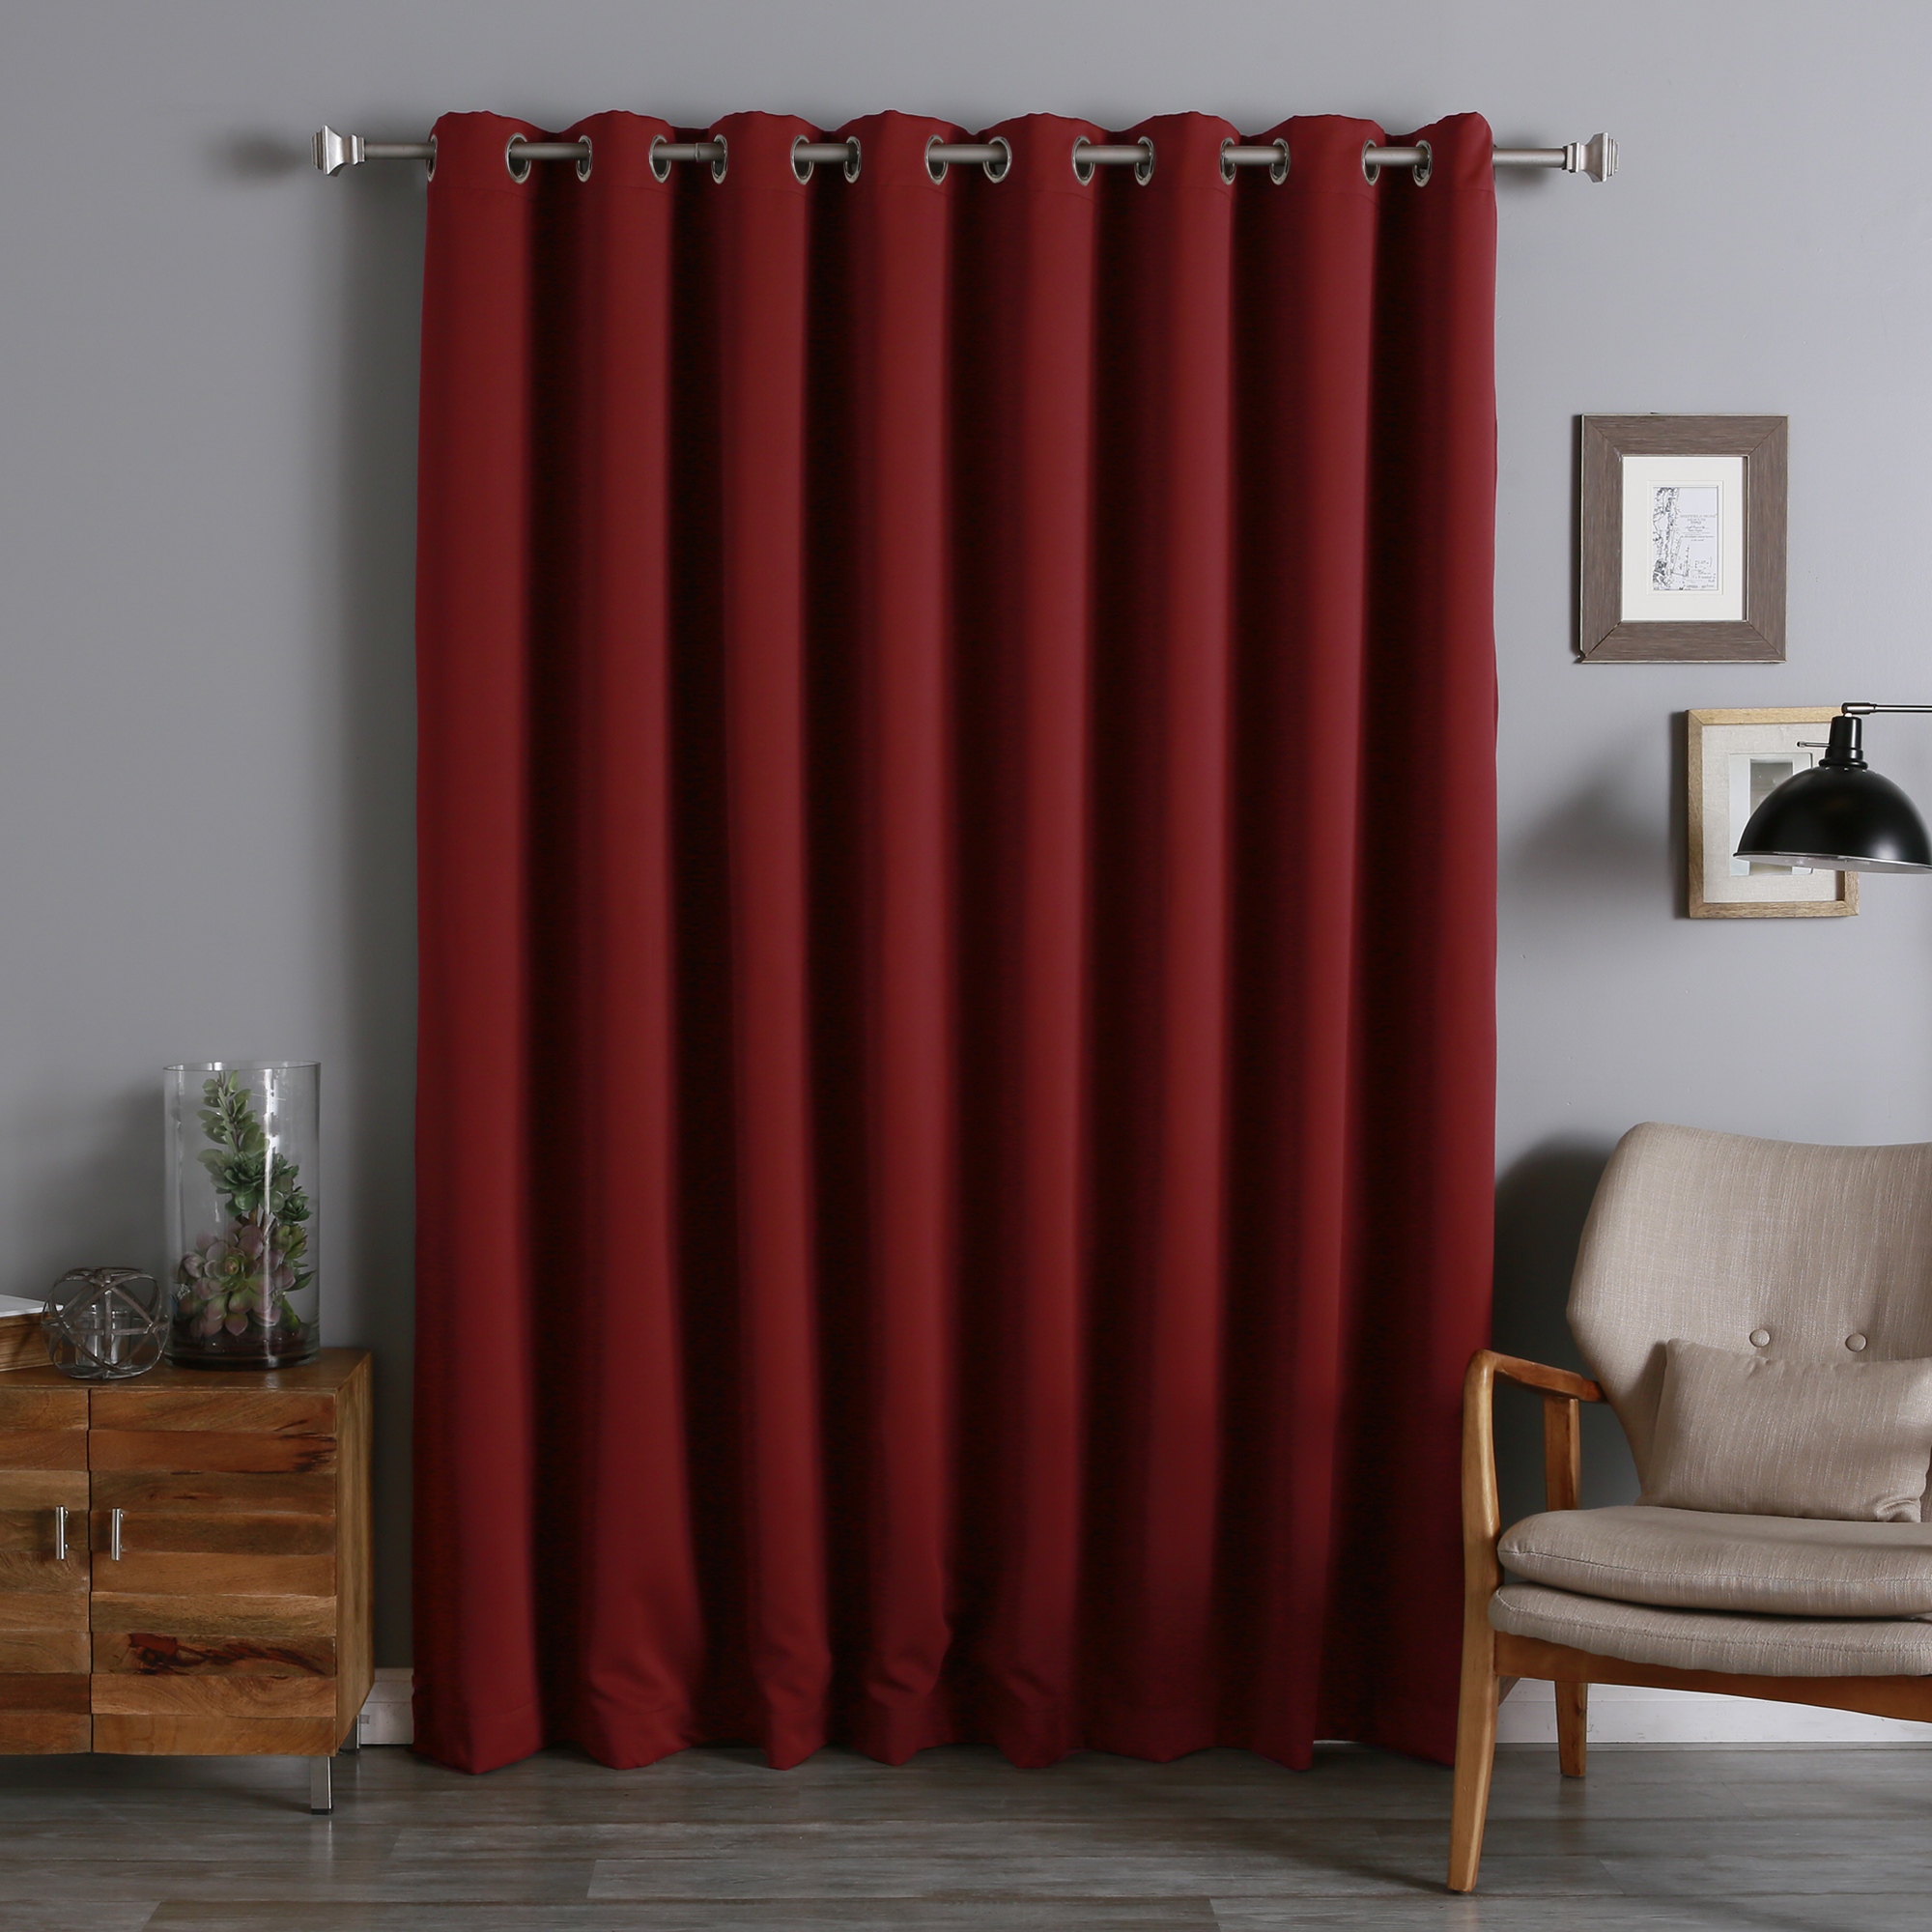 Lights Out Extra Wide Red Blackout Curtain Panel With Chair And Small Cabinet